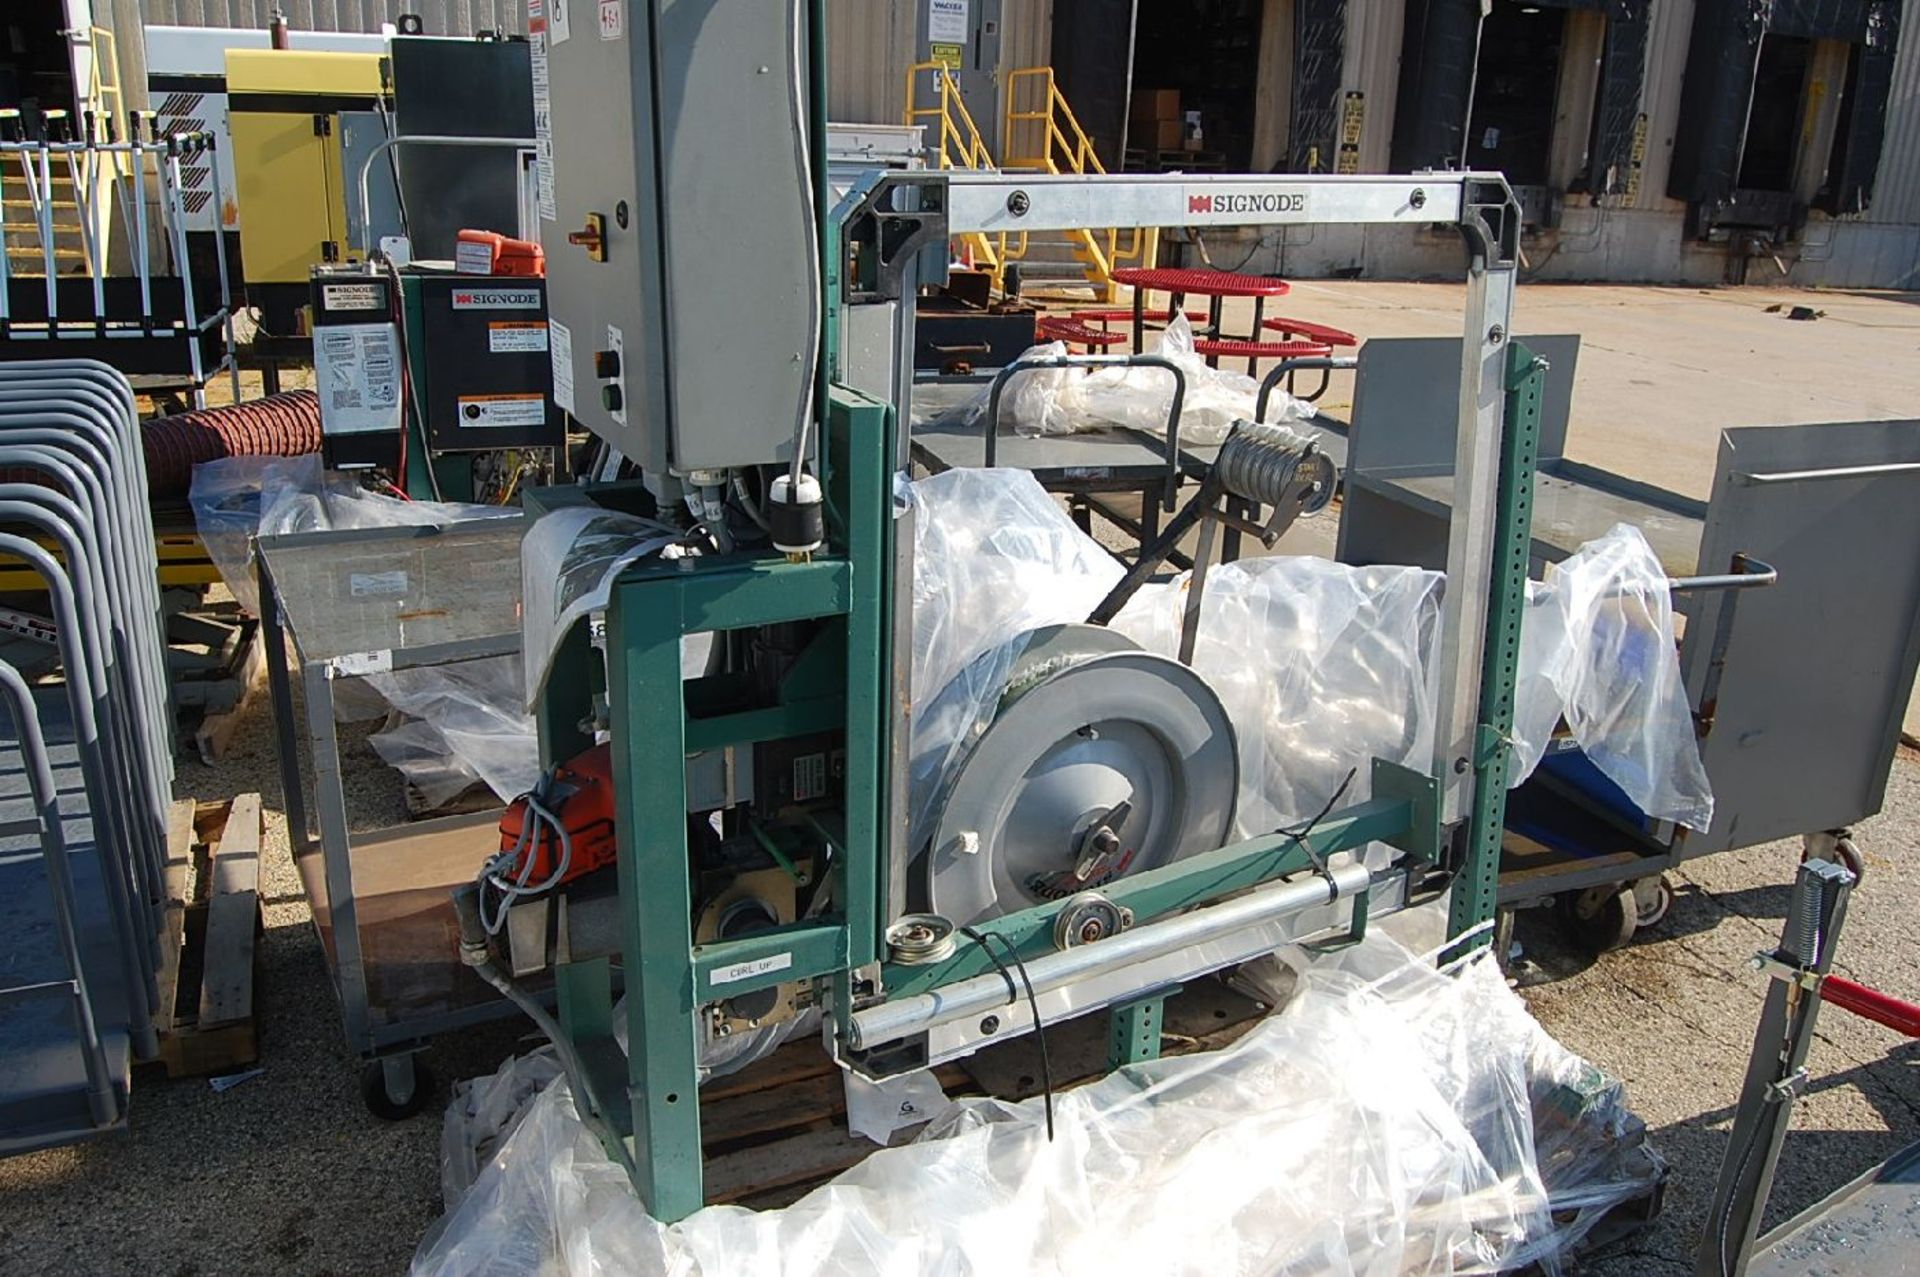 Lot 18 - Signode Model MOD 710 Power Strapping Machine